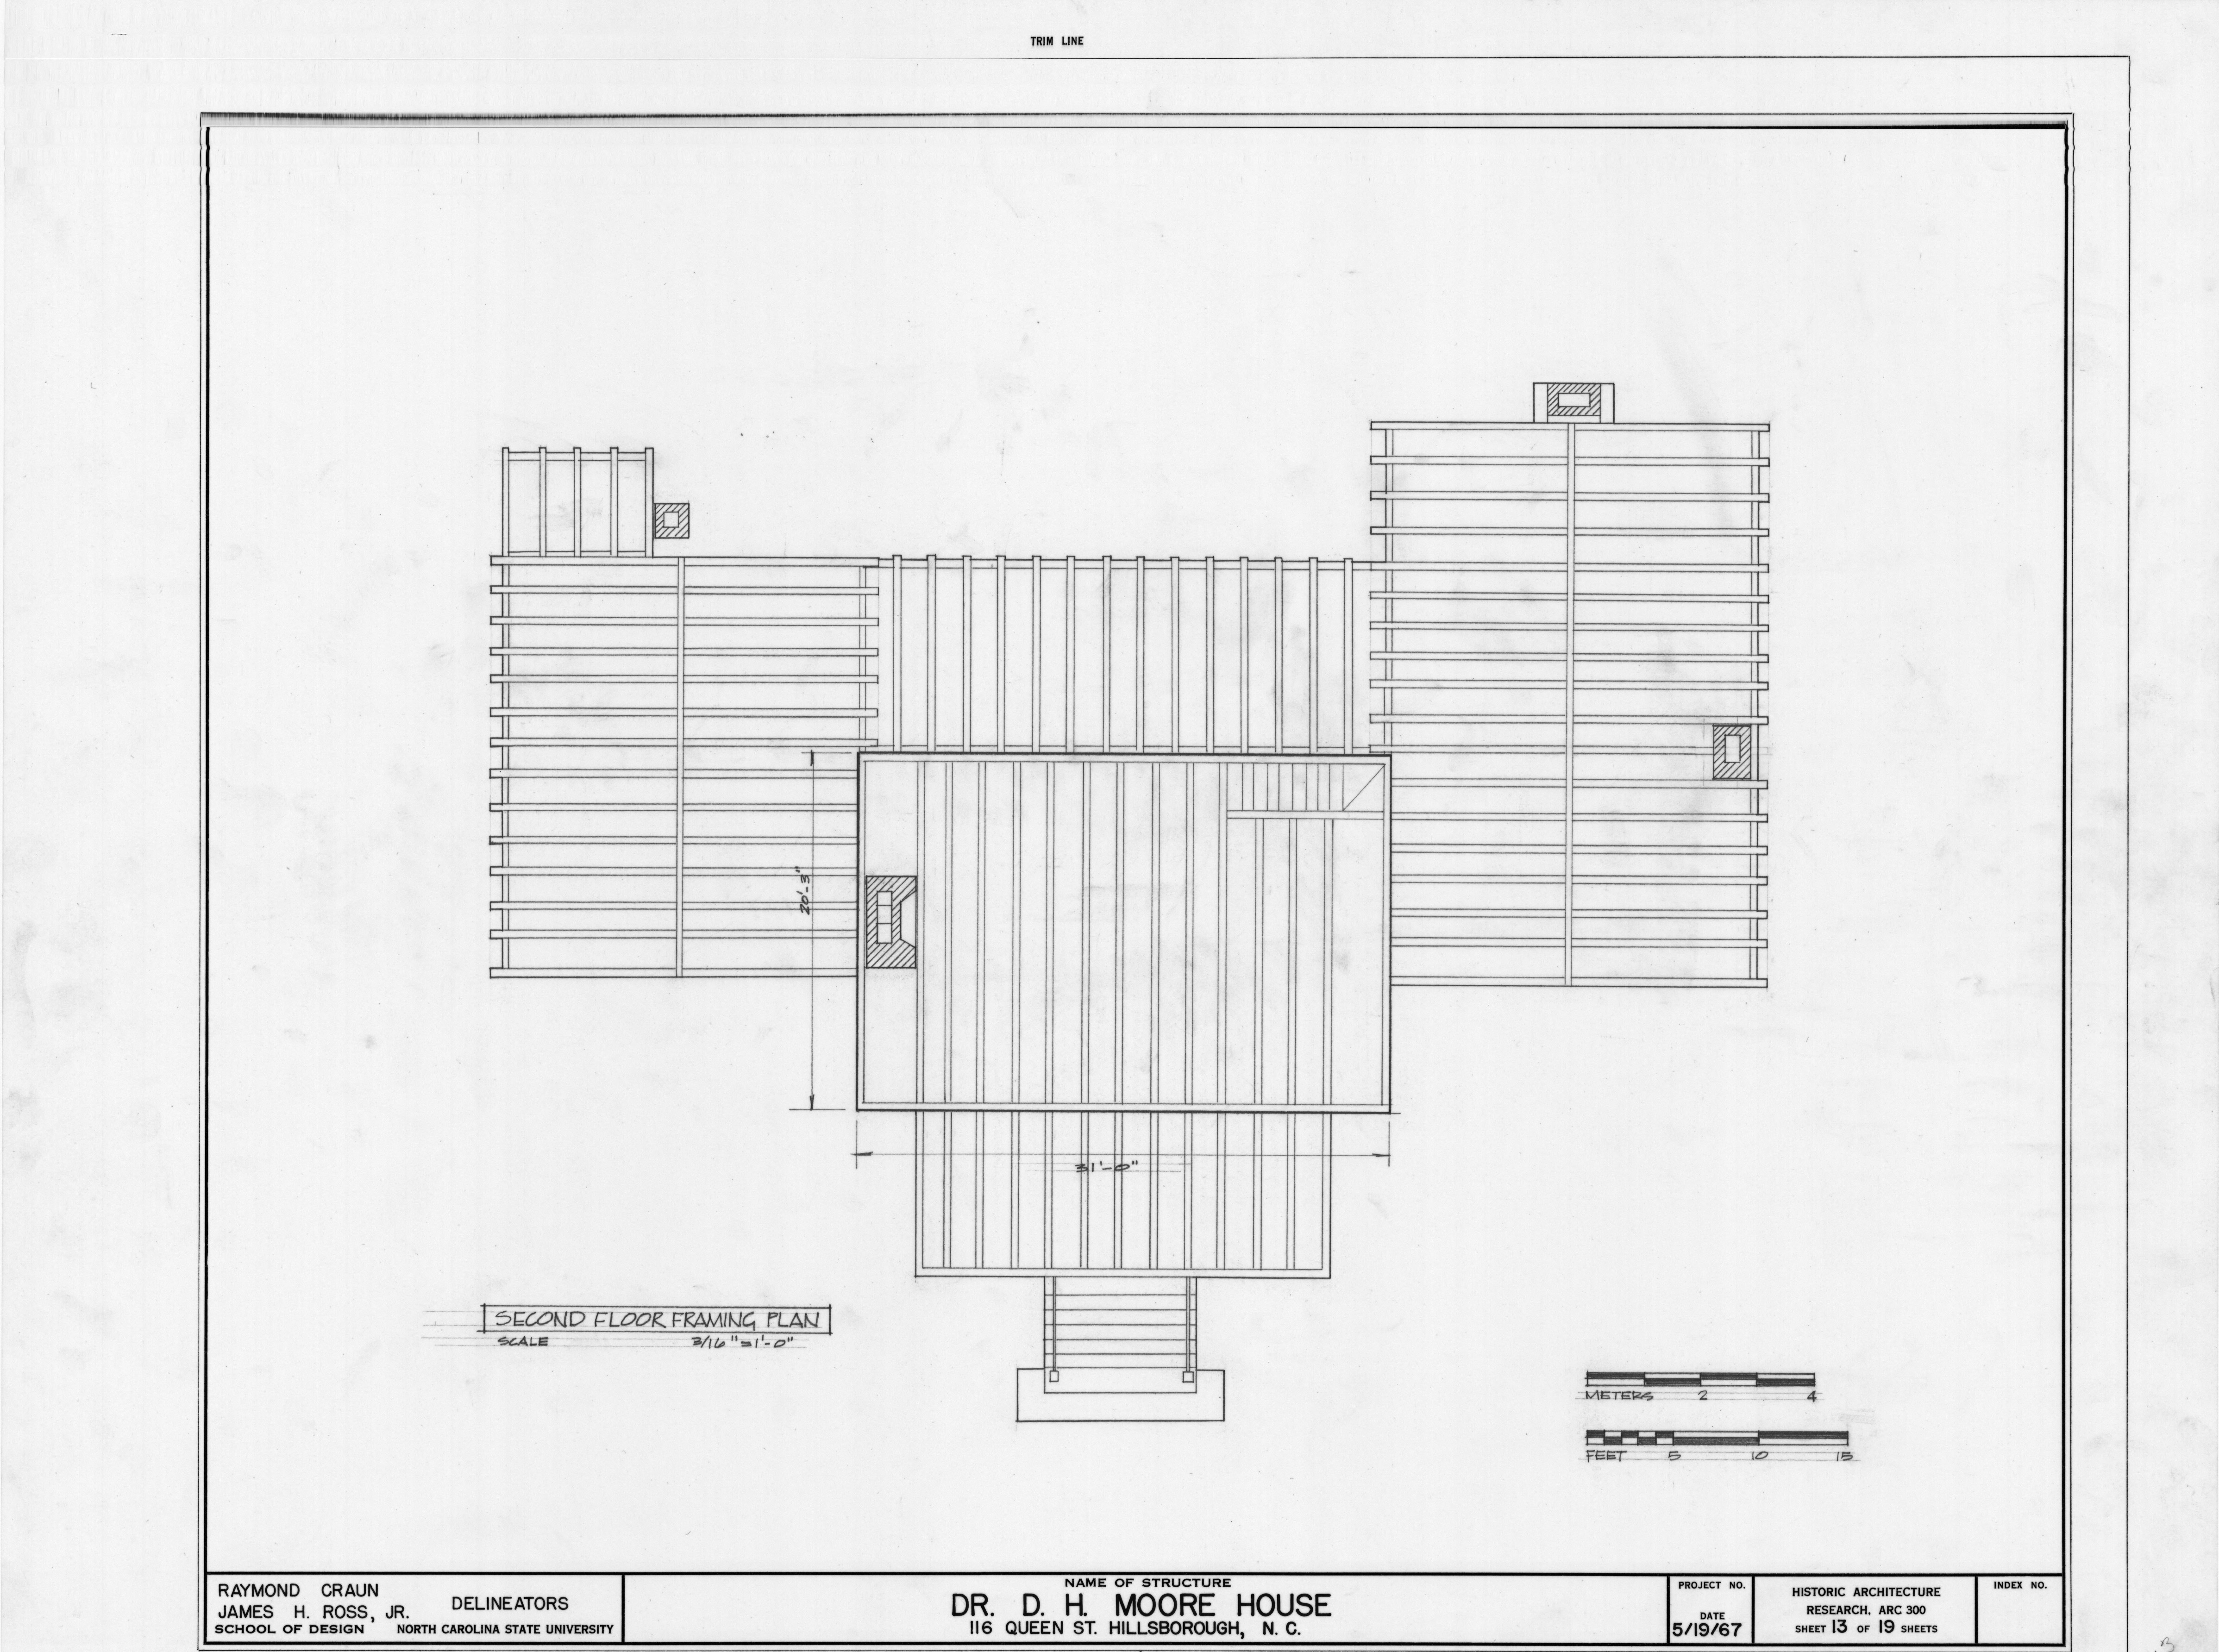 Second floor framing plan hasell nash house hillsborough for Floor framing plan